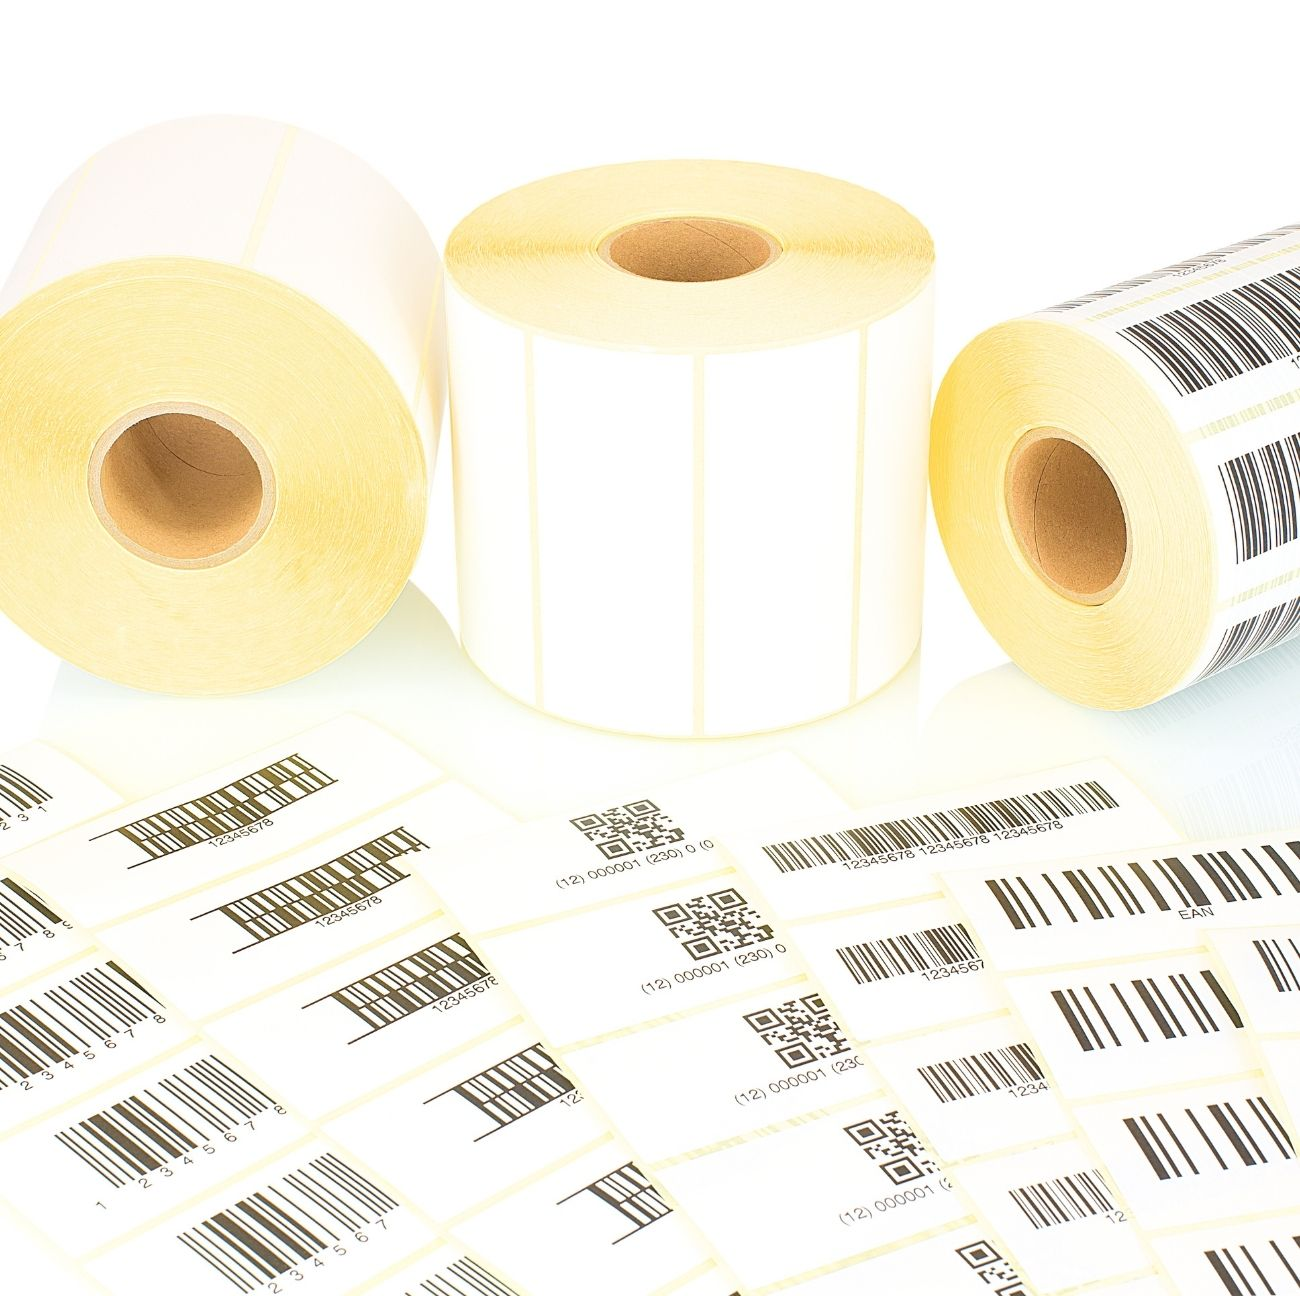 80 mm x 120 mm Labels